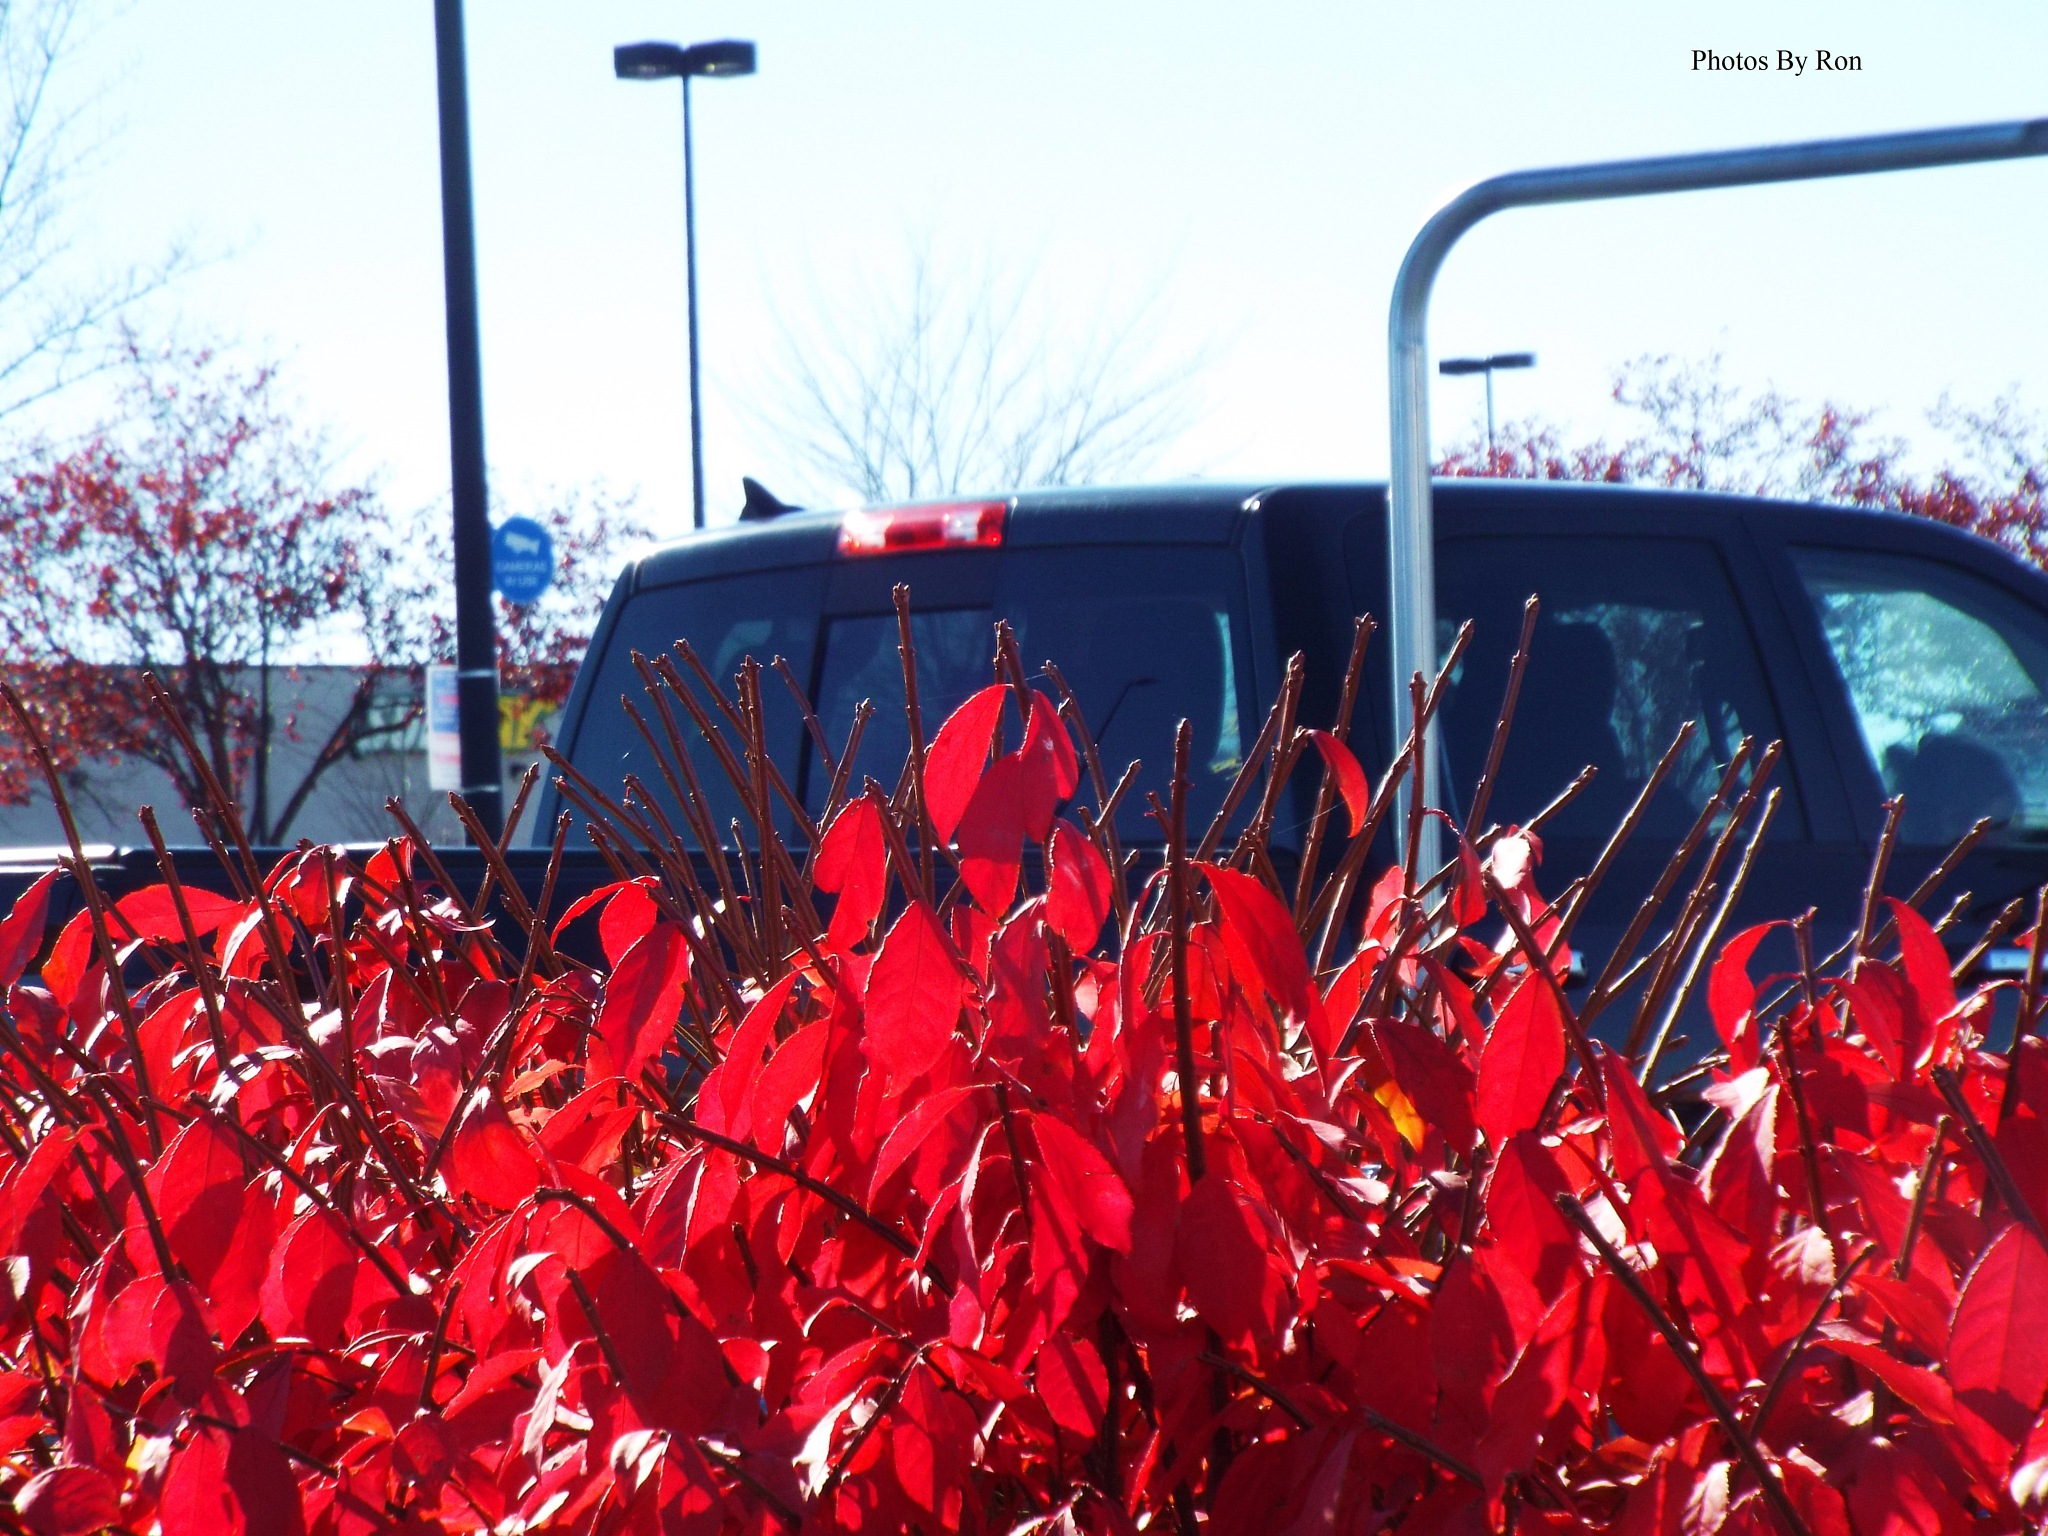 """Fire Bush Leaves In The Wal-Mart Parking Lot""  Pic#1 by Ron Berkley"